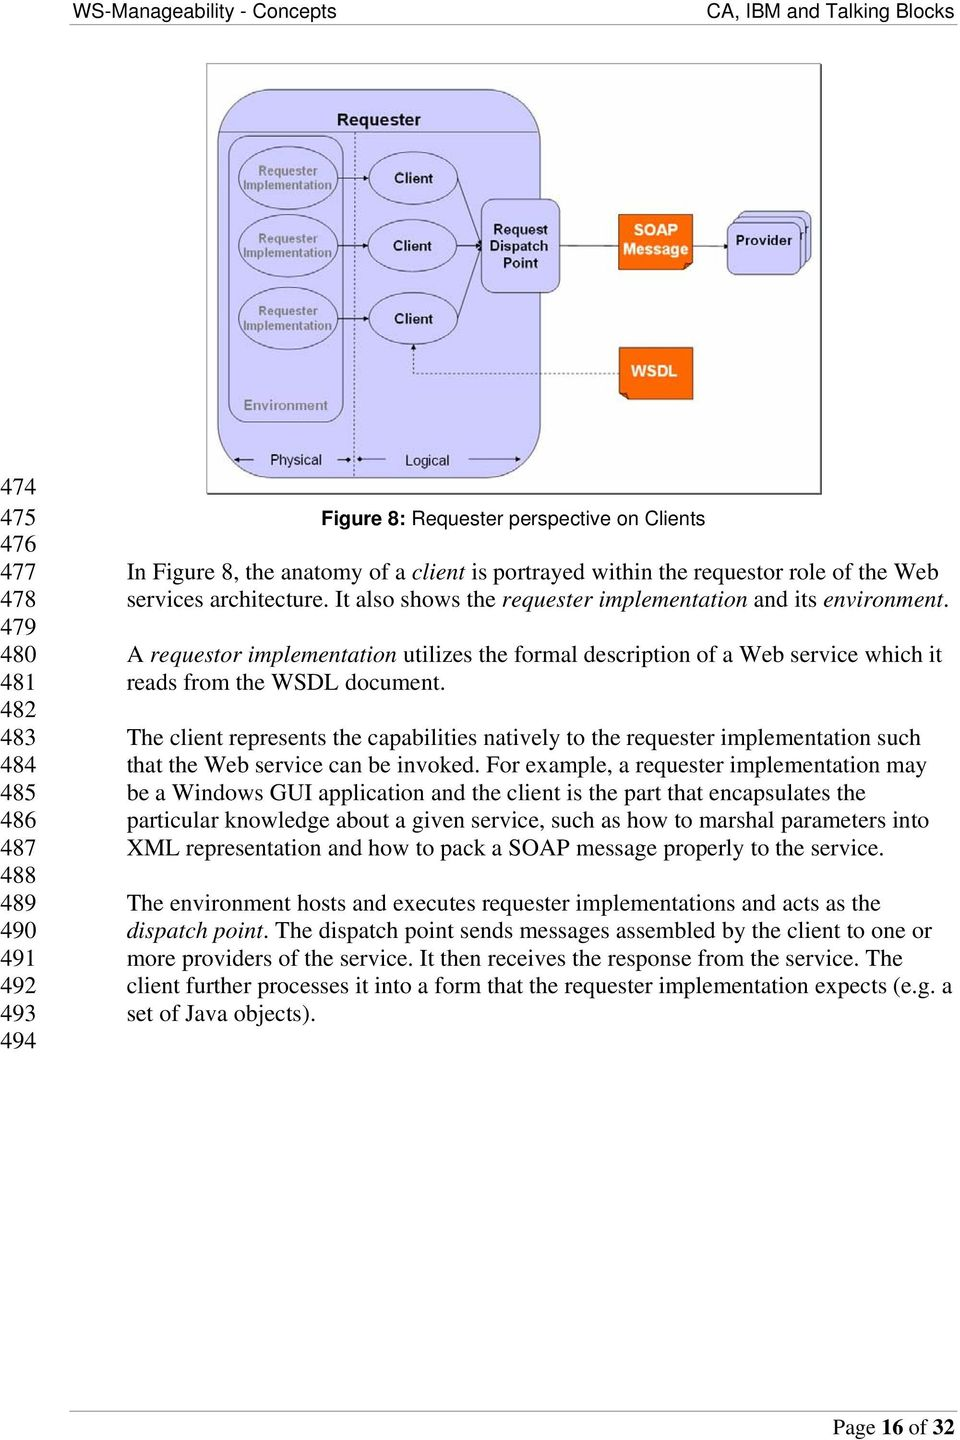 A requestor implementation utilizes the formal description of a Web service which it reads from the WSDL document.